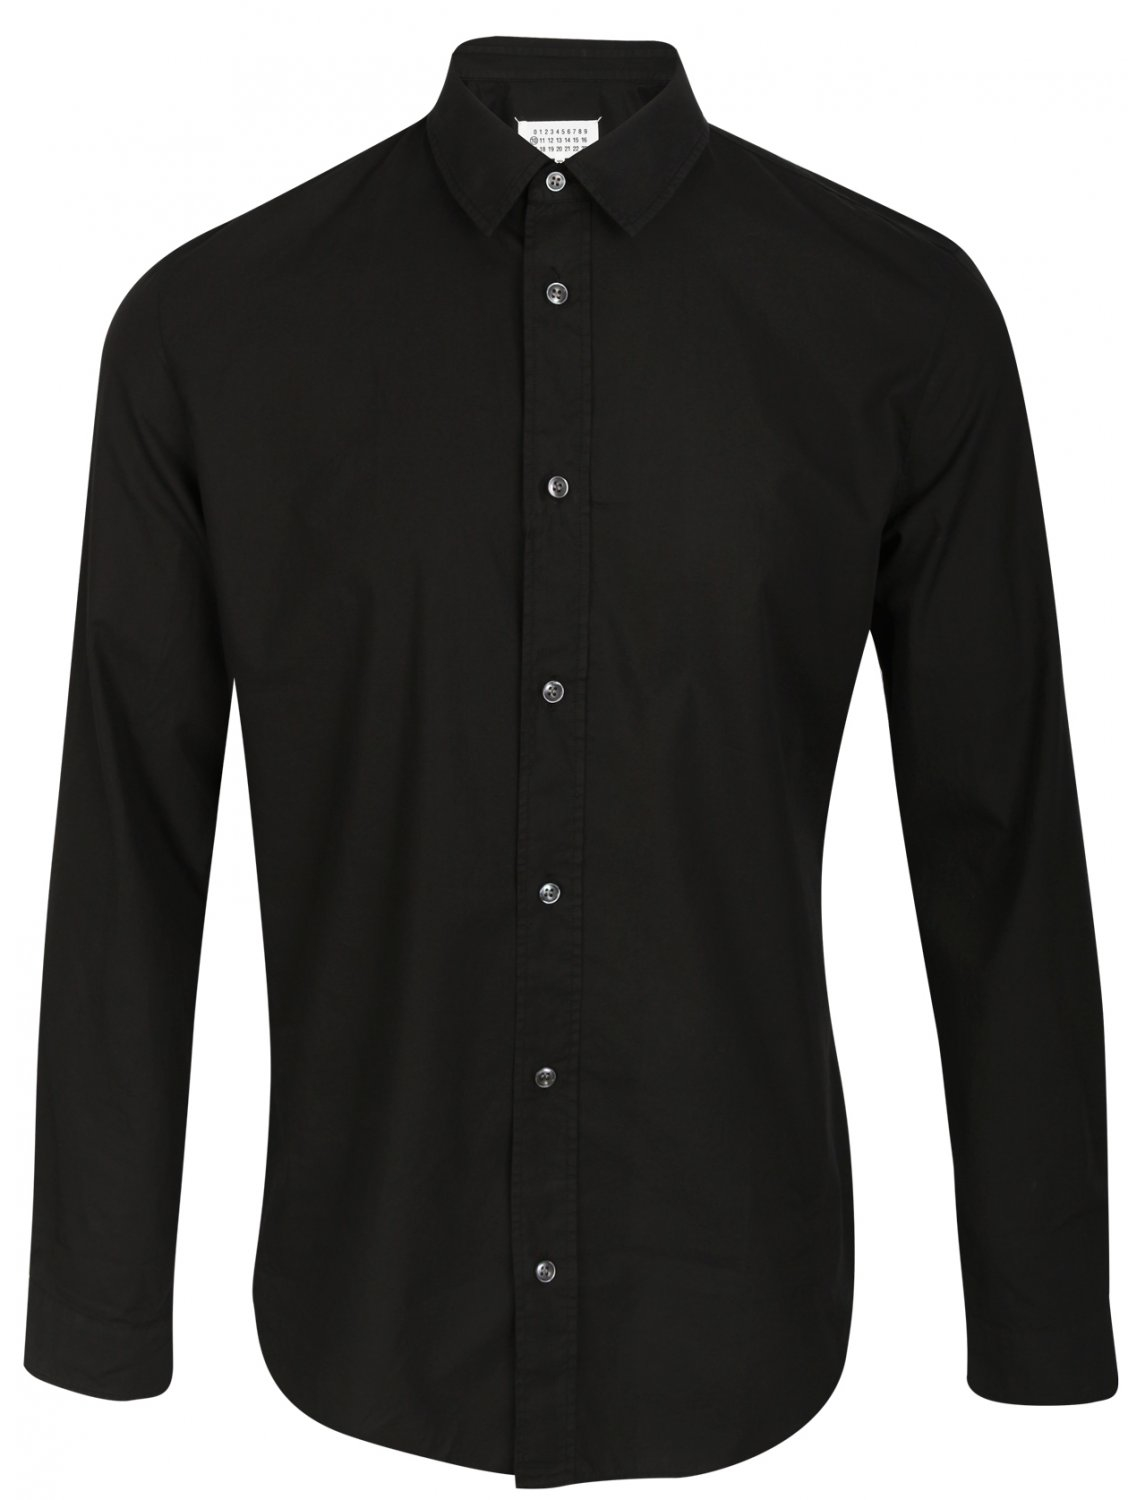 maison margiela classic black button down cotton oxford